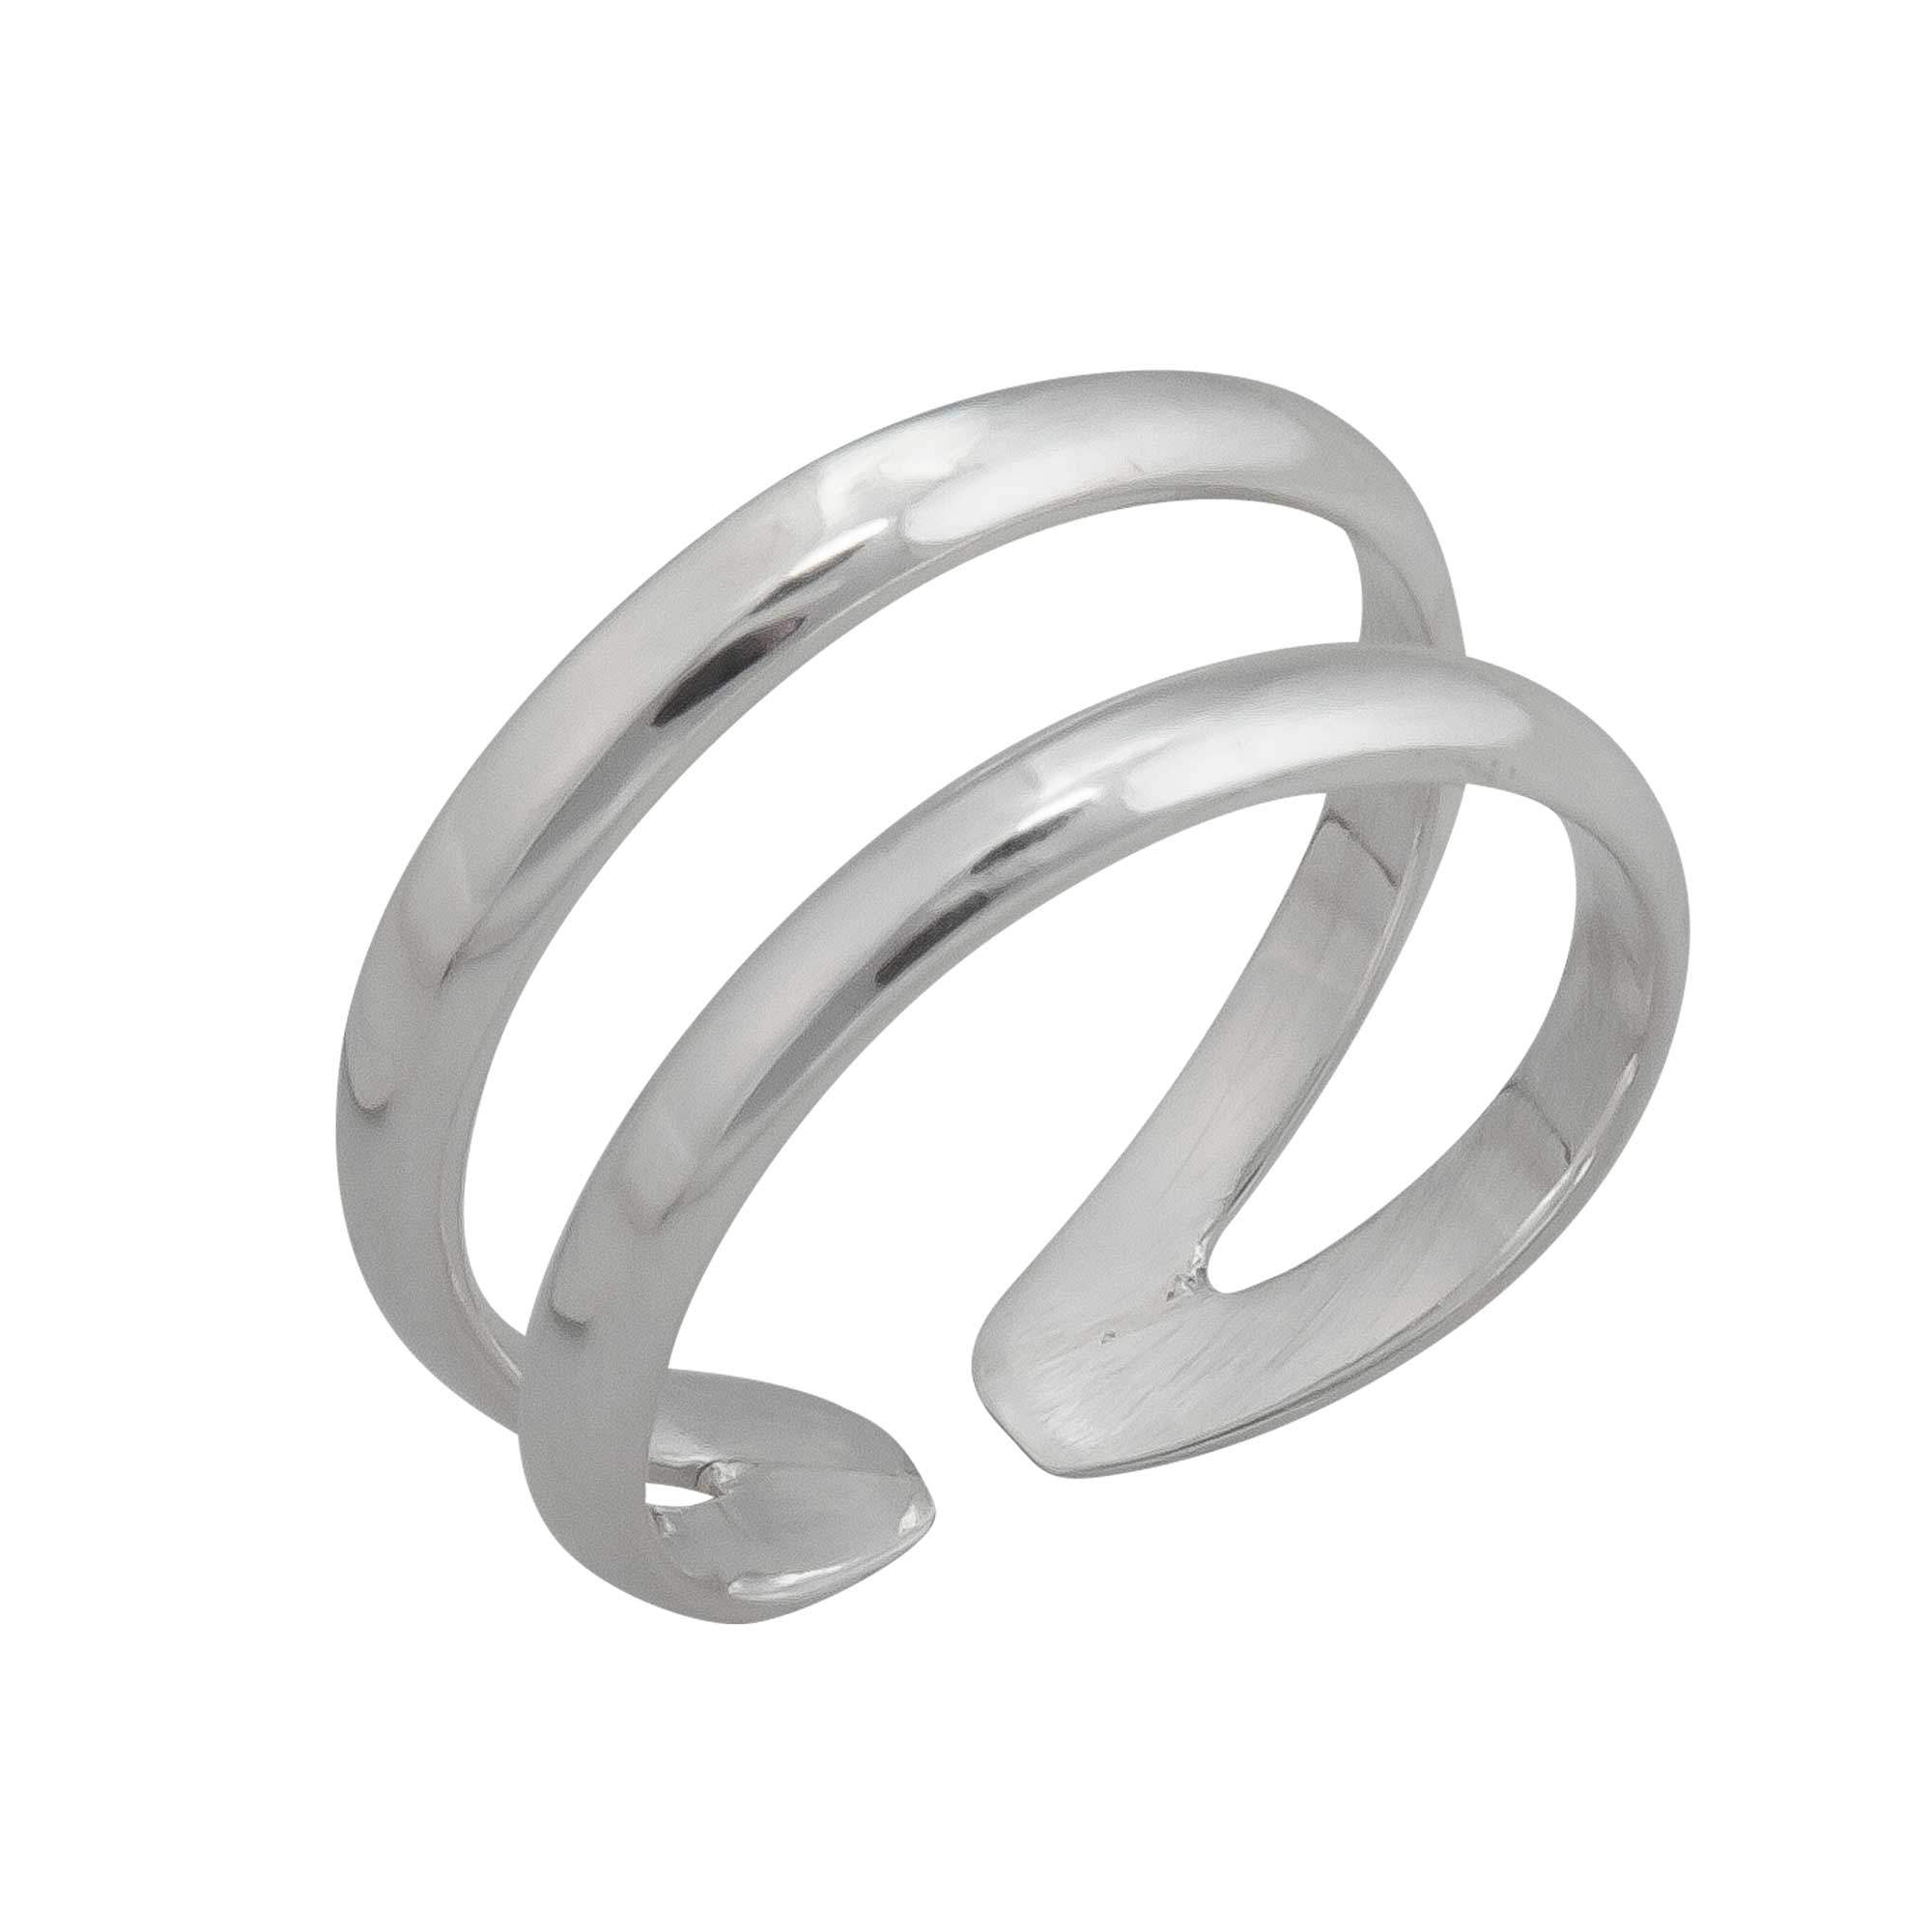 Sterling Silver Double Band Adjustable Ring | Charles Albert Jewelry